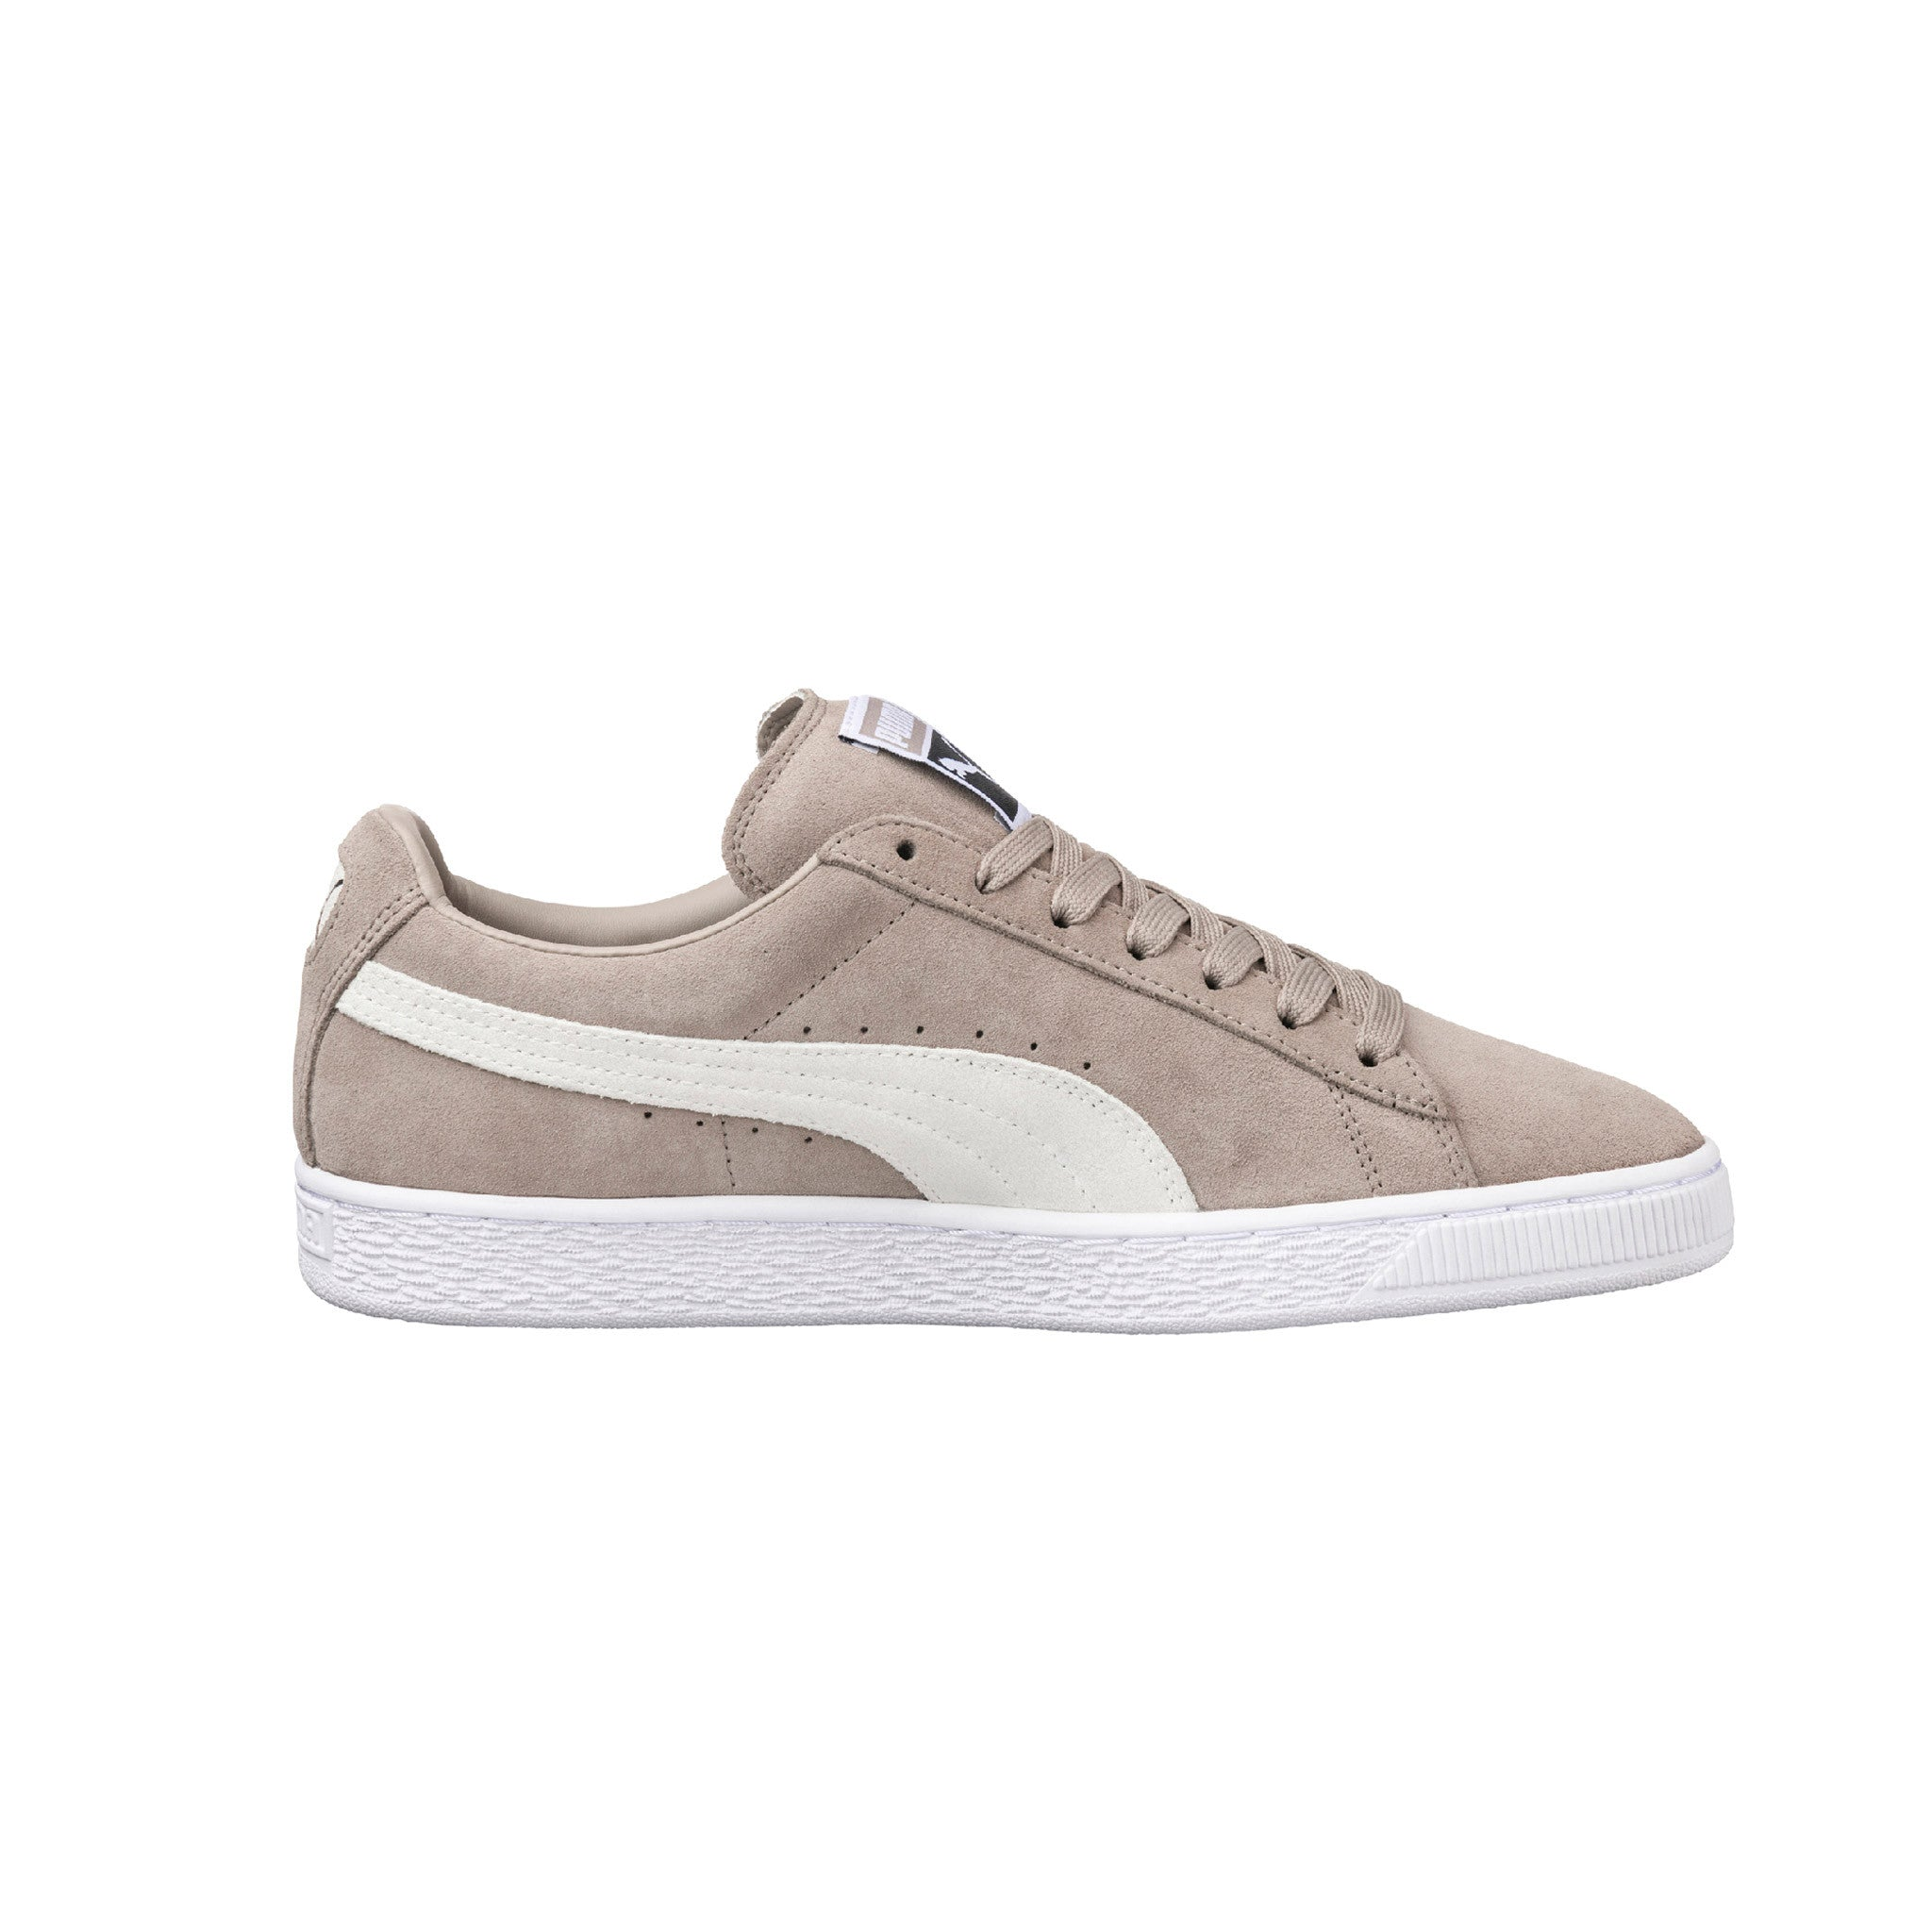 Suede Classic Puma Sneakers Beige Side View